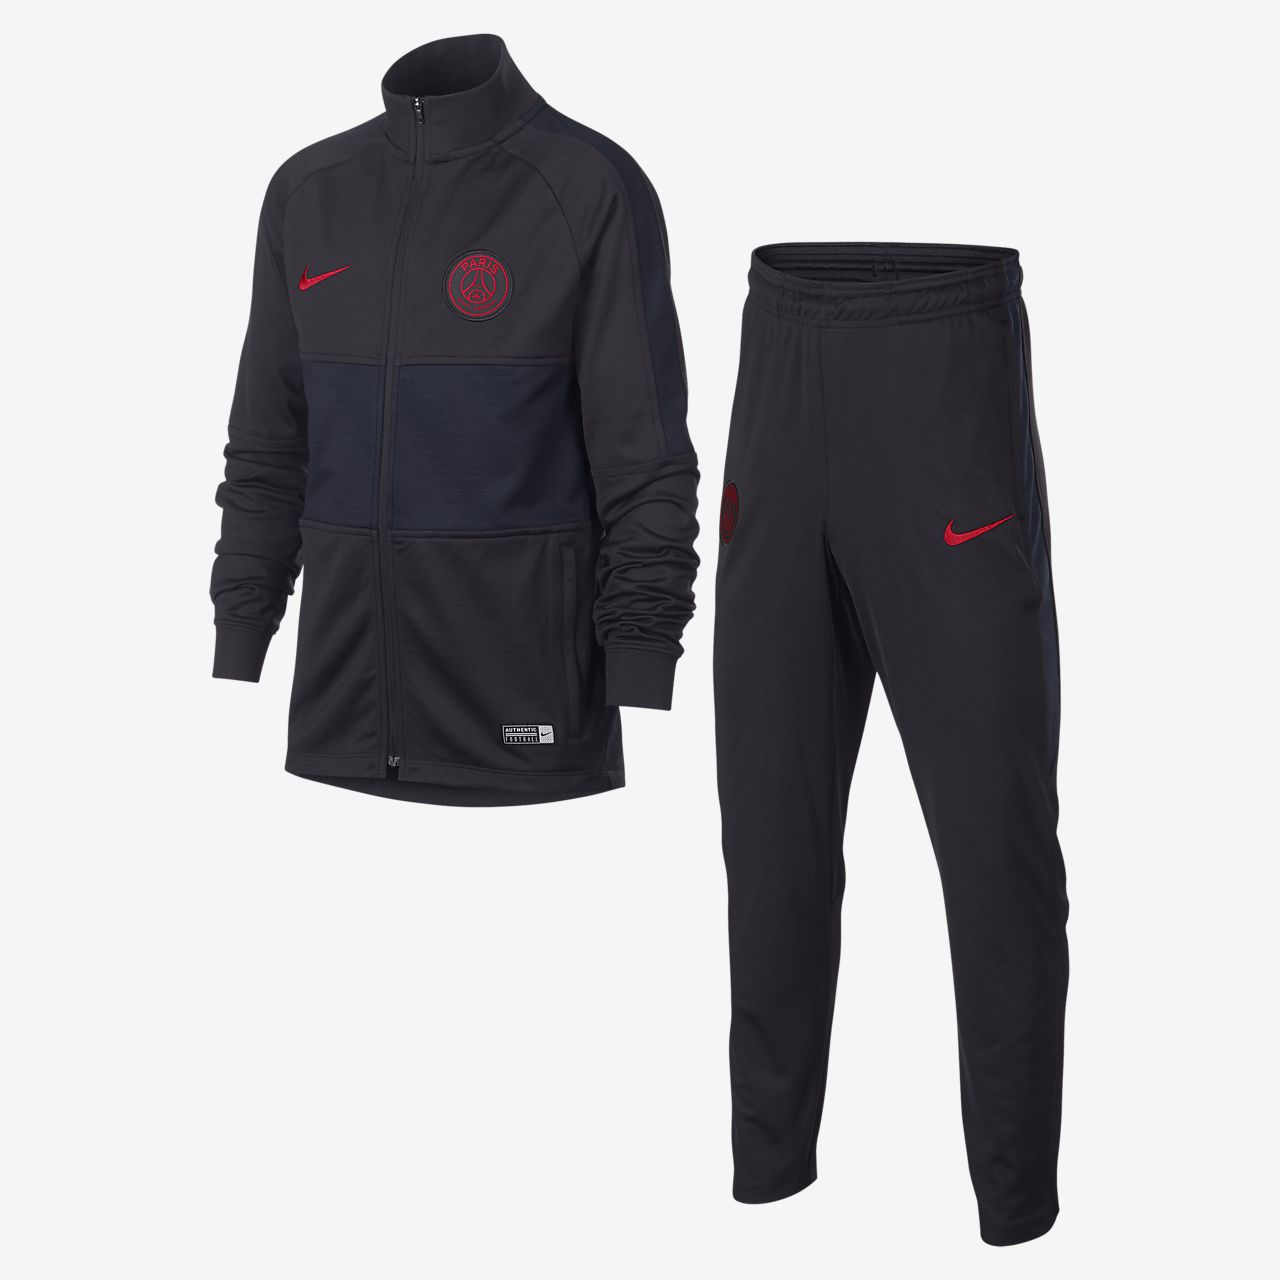 Survêtement de football Nike Dri-FIT Paris Saint-Germain Strike pour Enfant plus âgé